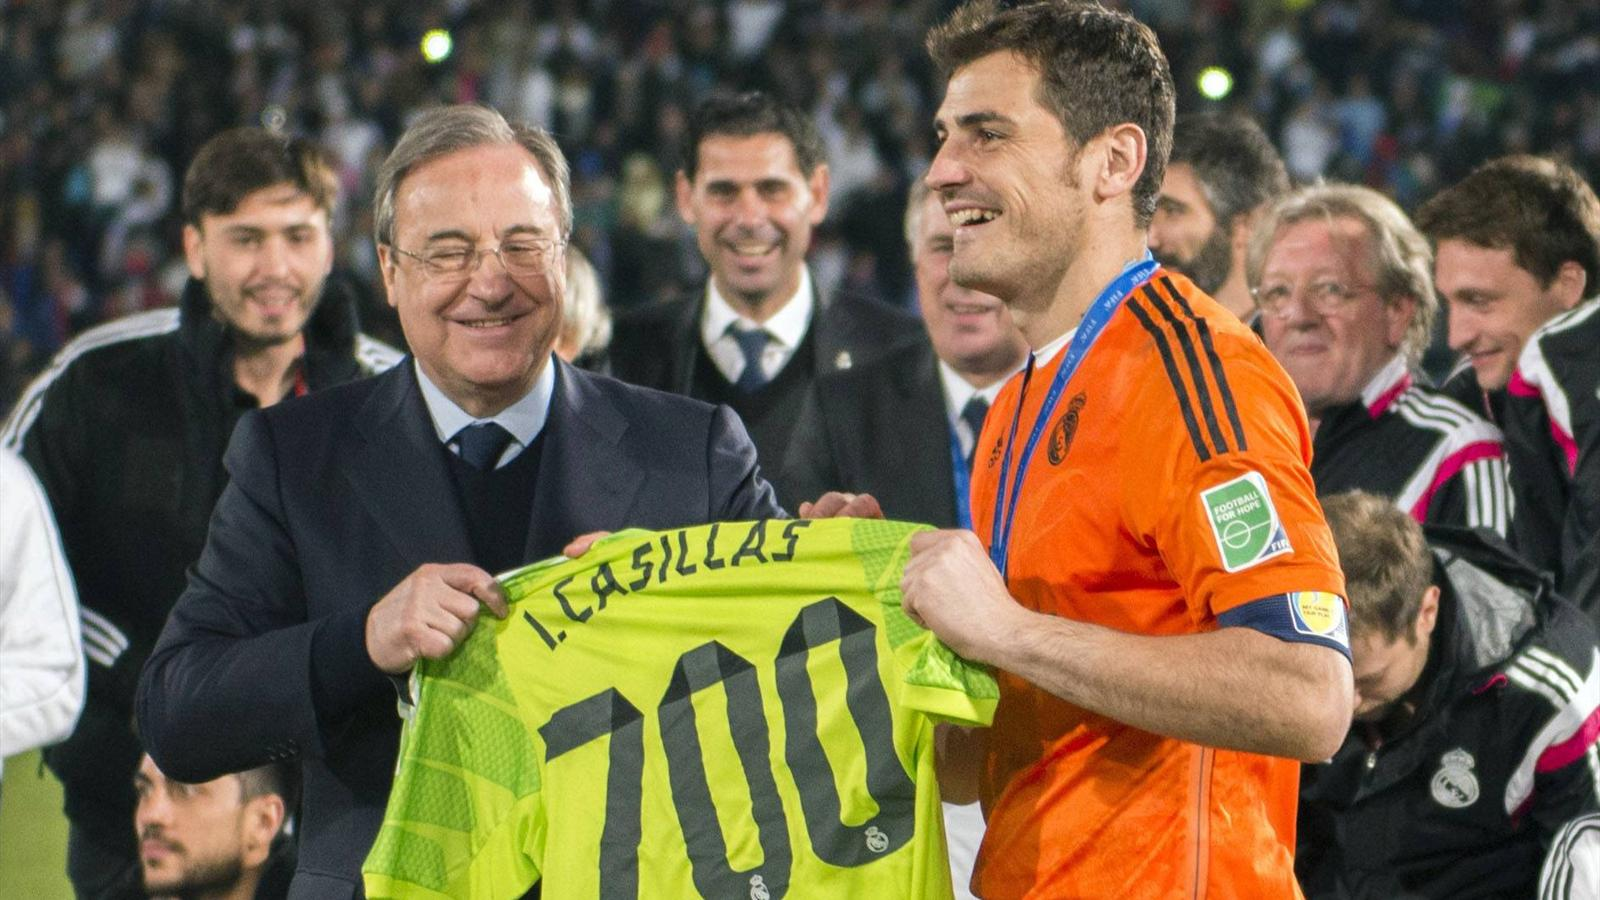 Florentino Perez (L) and Iker Casillas